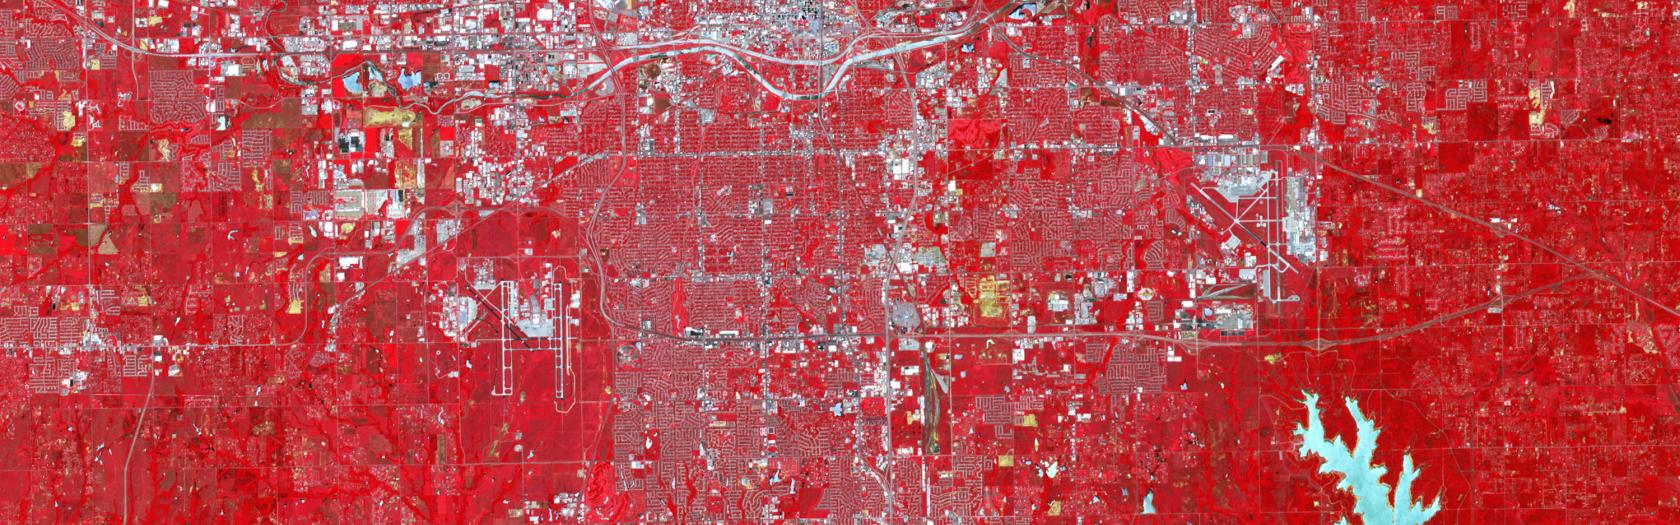 ASTER on NASA's Terra satellite observed the scar of the Newcastle-Moore tornado on the Oklahoma landscape